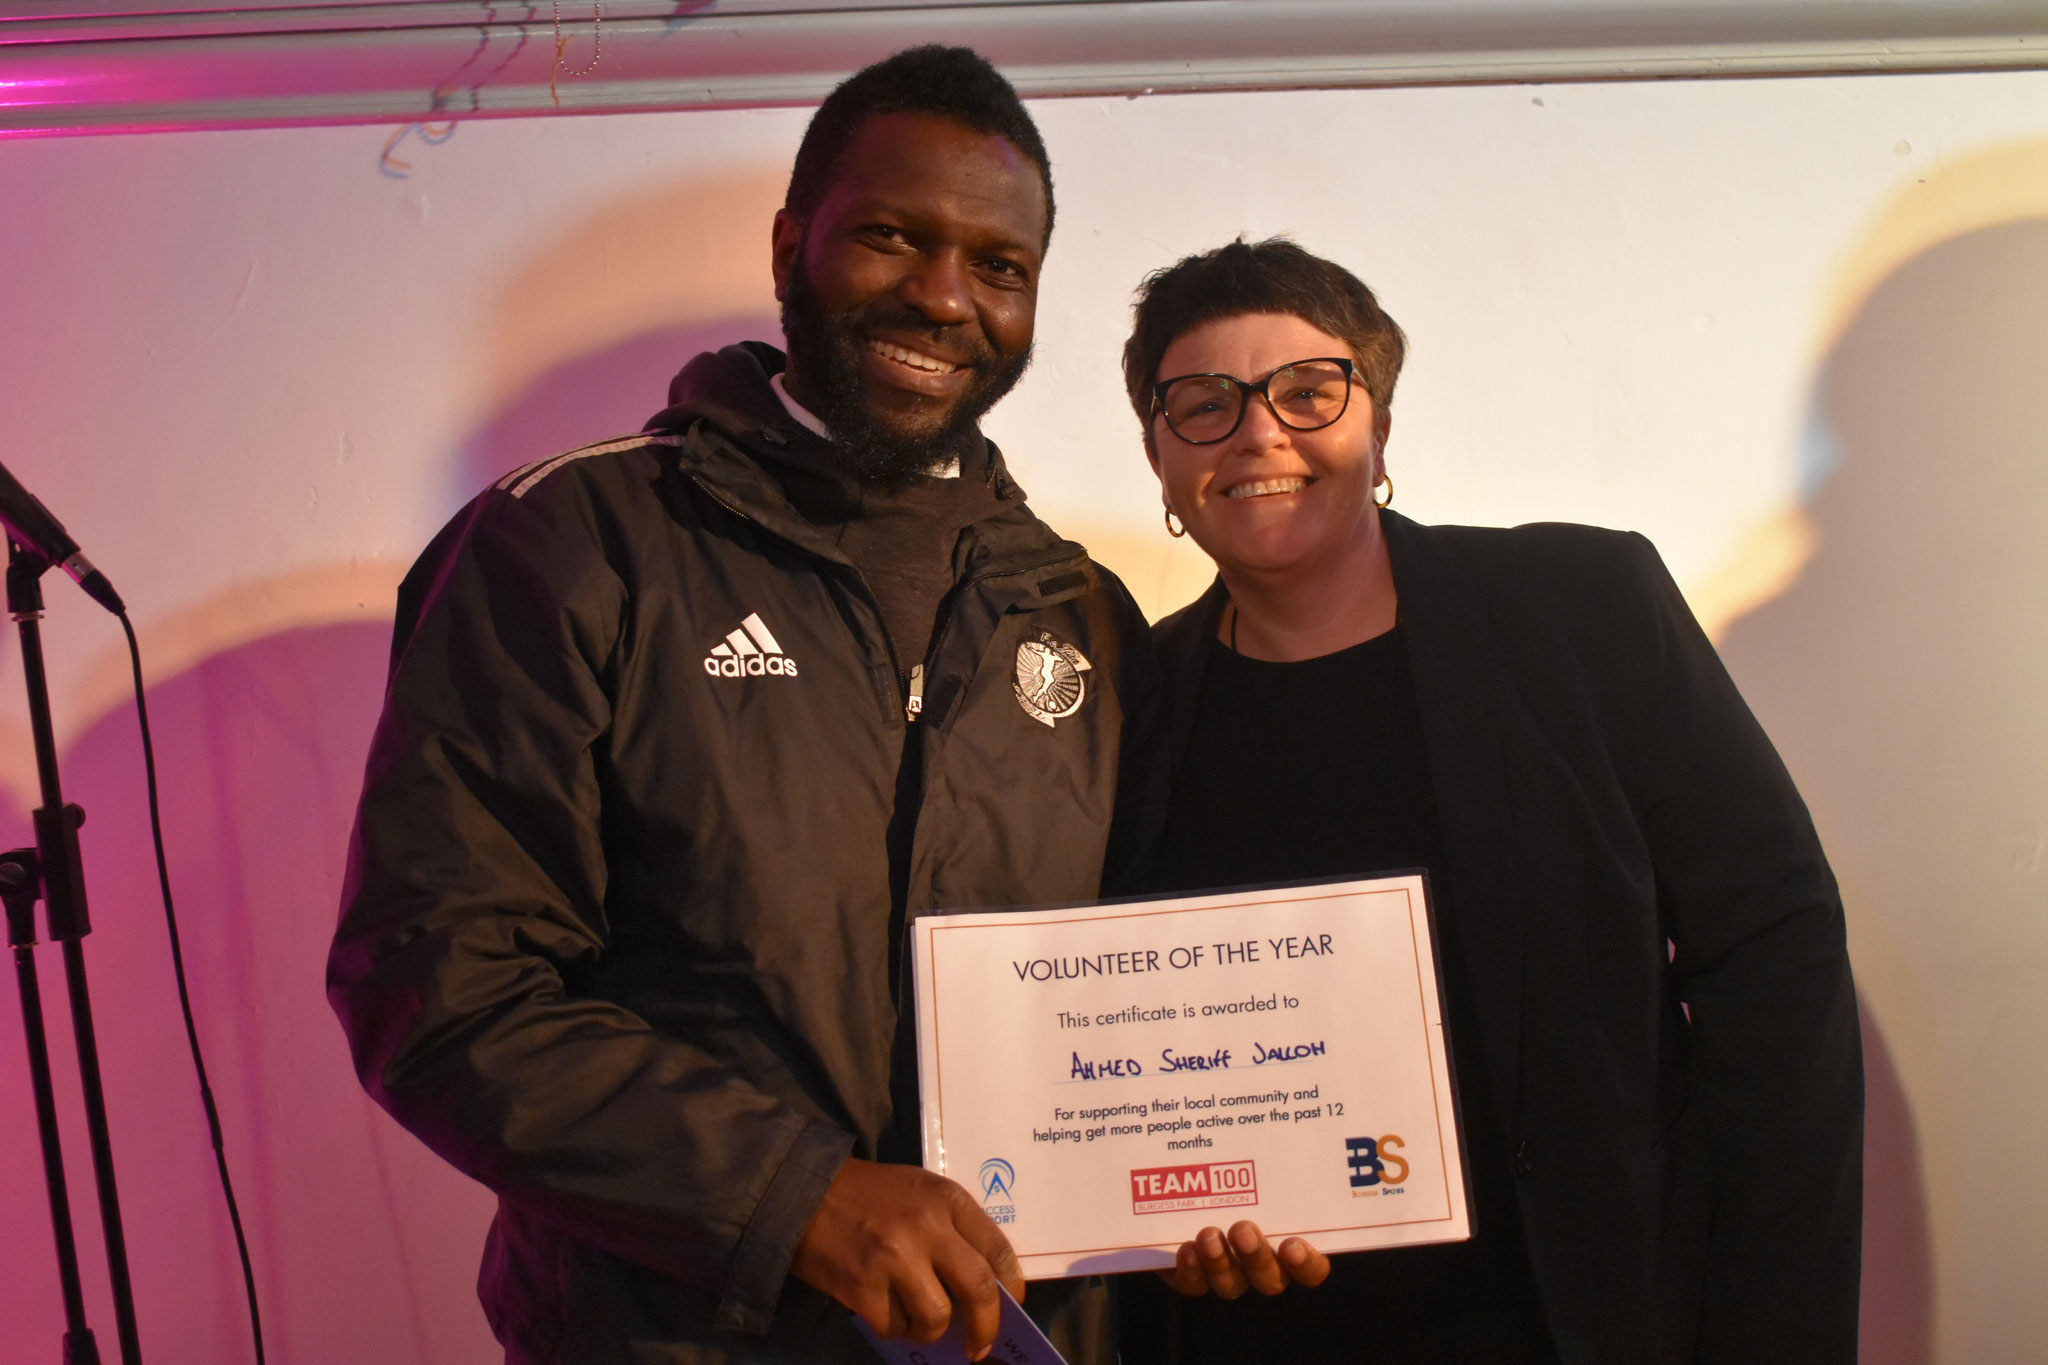 Ahmed Sheriff Jalloh FC Jean Te Le Volunteer of the year